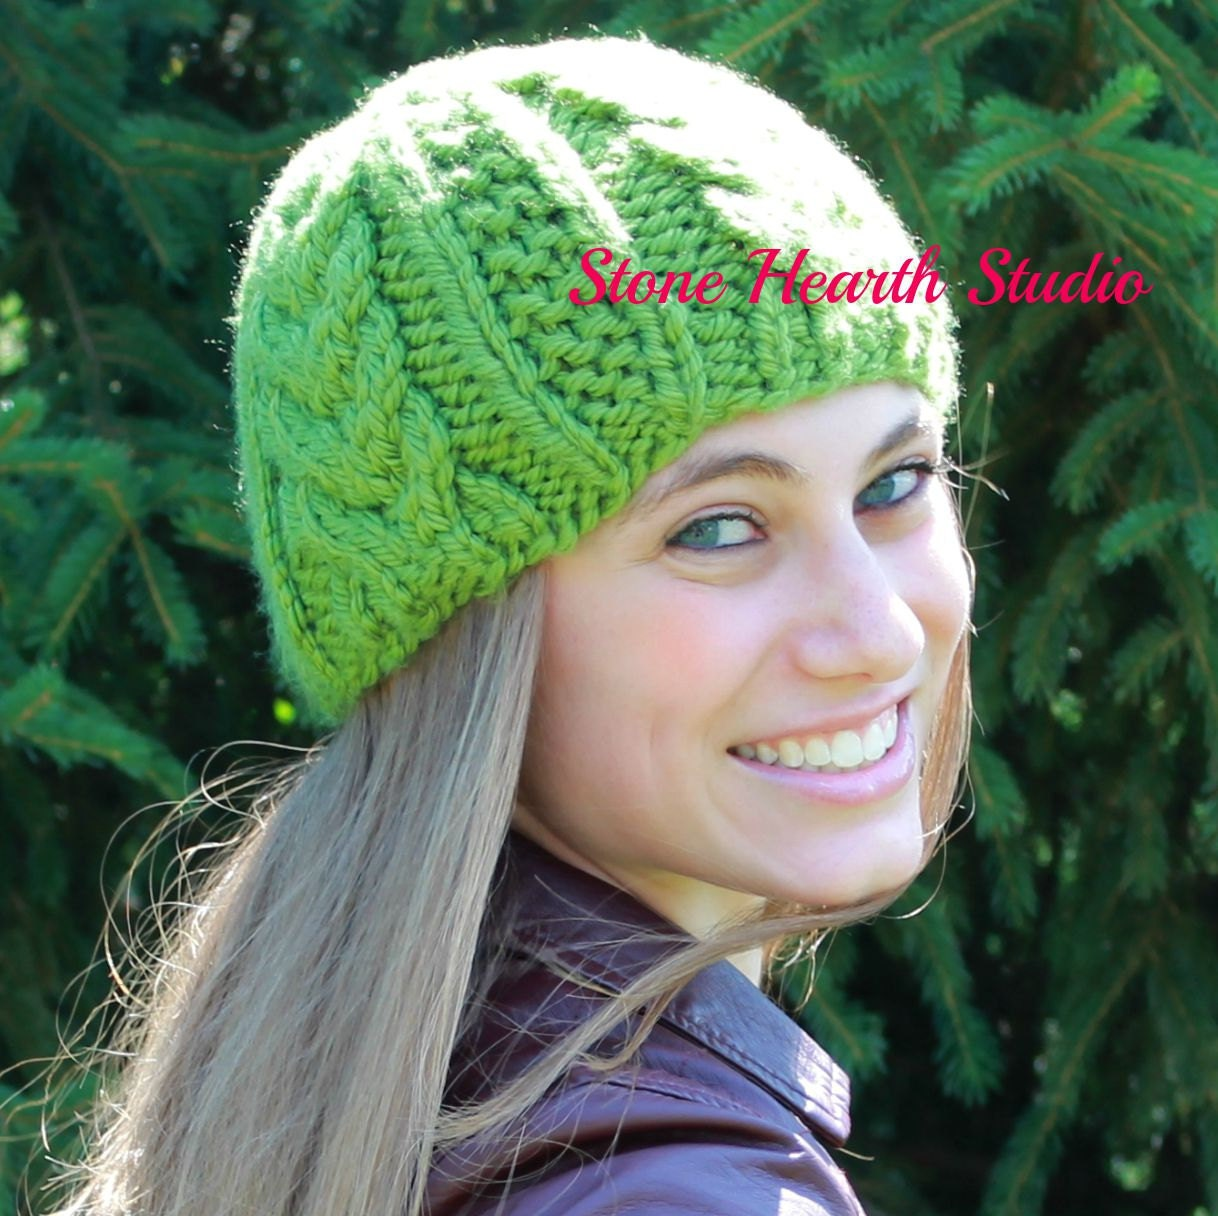 BROOKLYN BEANIE,Knit Hat Pattern,Thick Cabled,Urban,Chic,Winter Hat ...